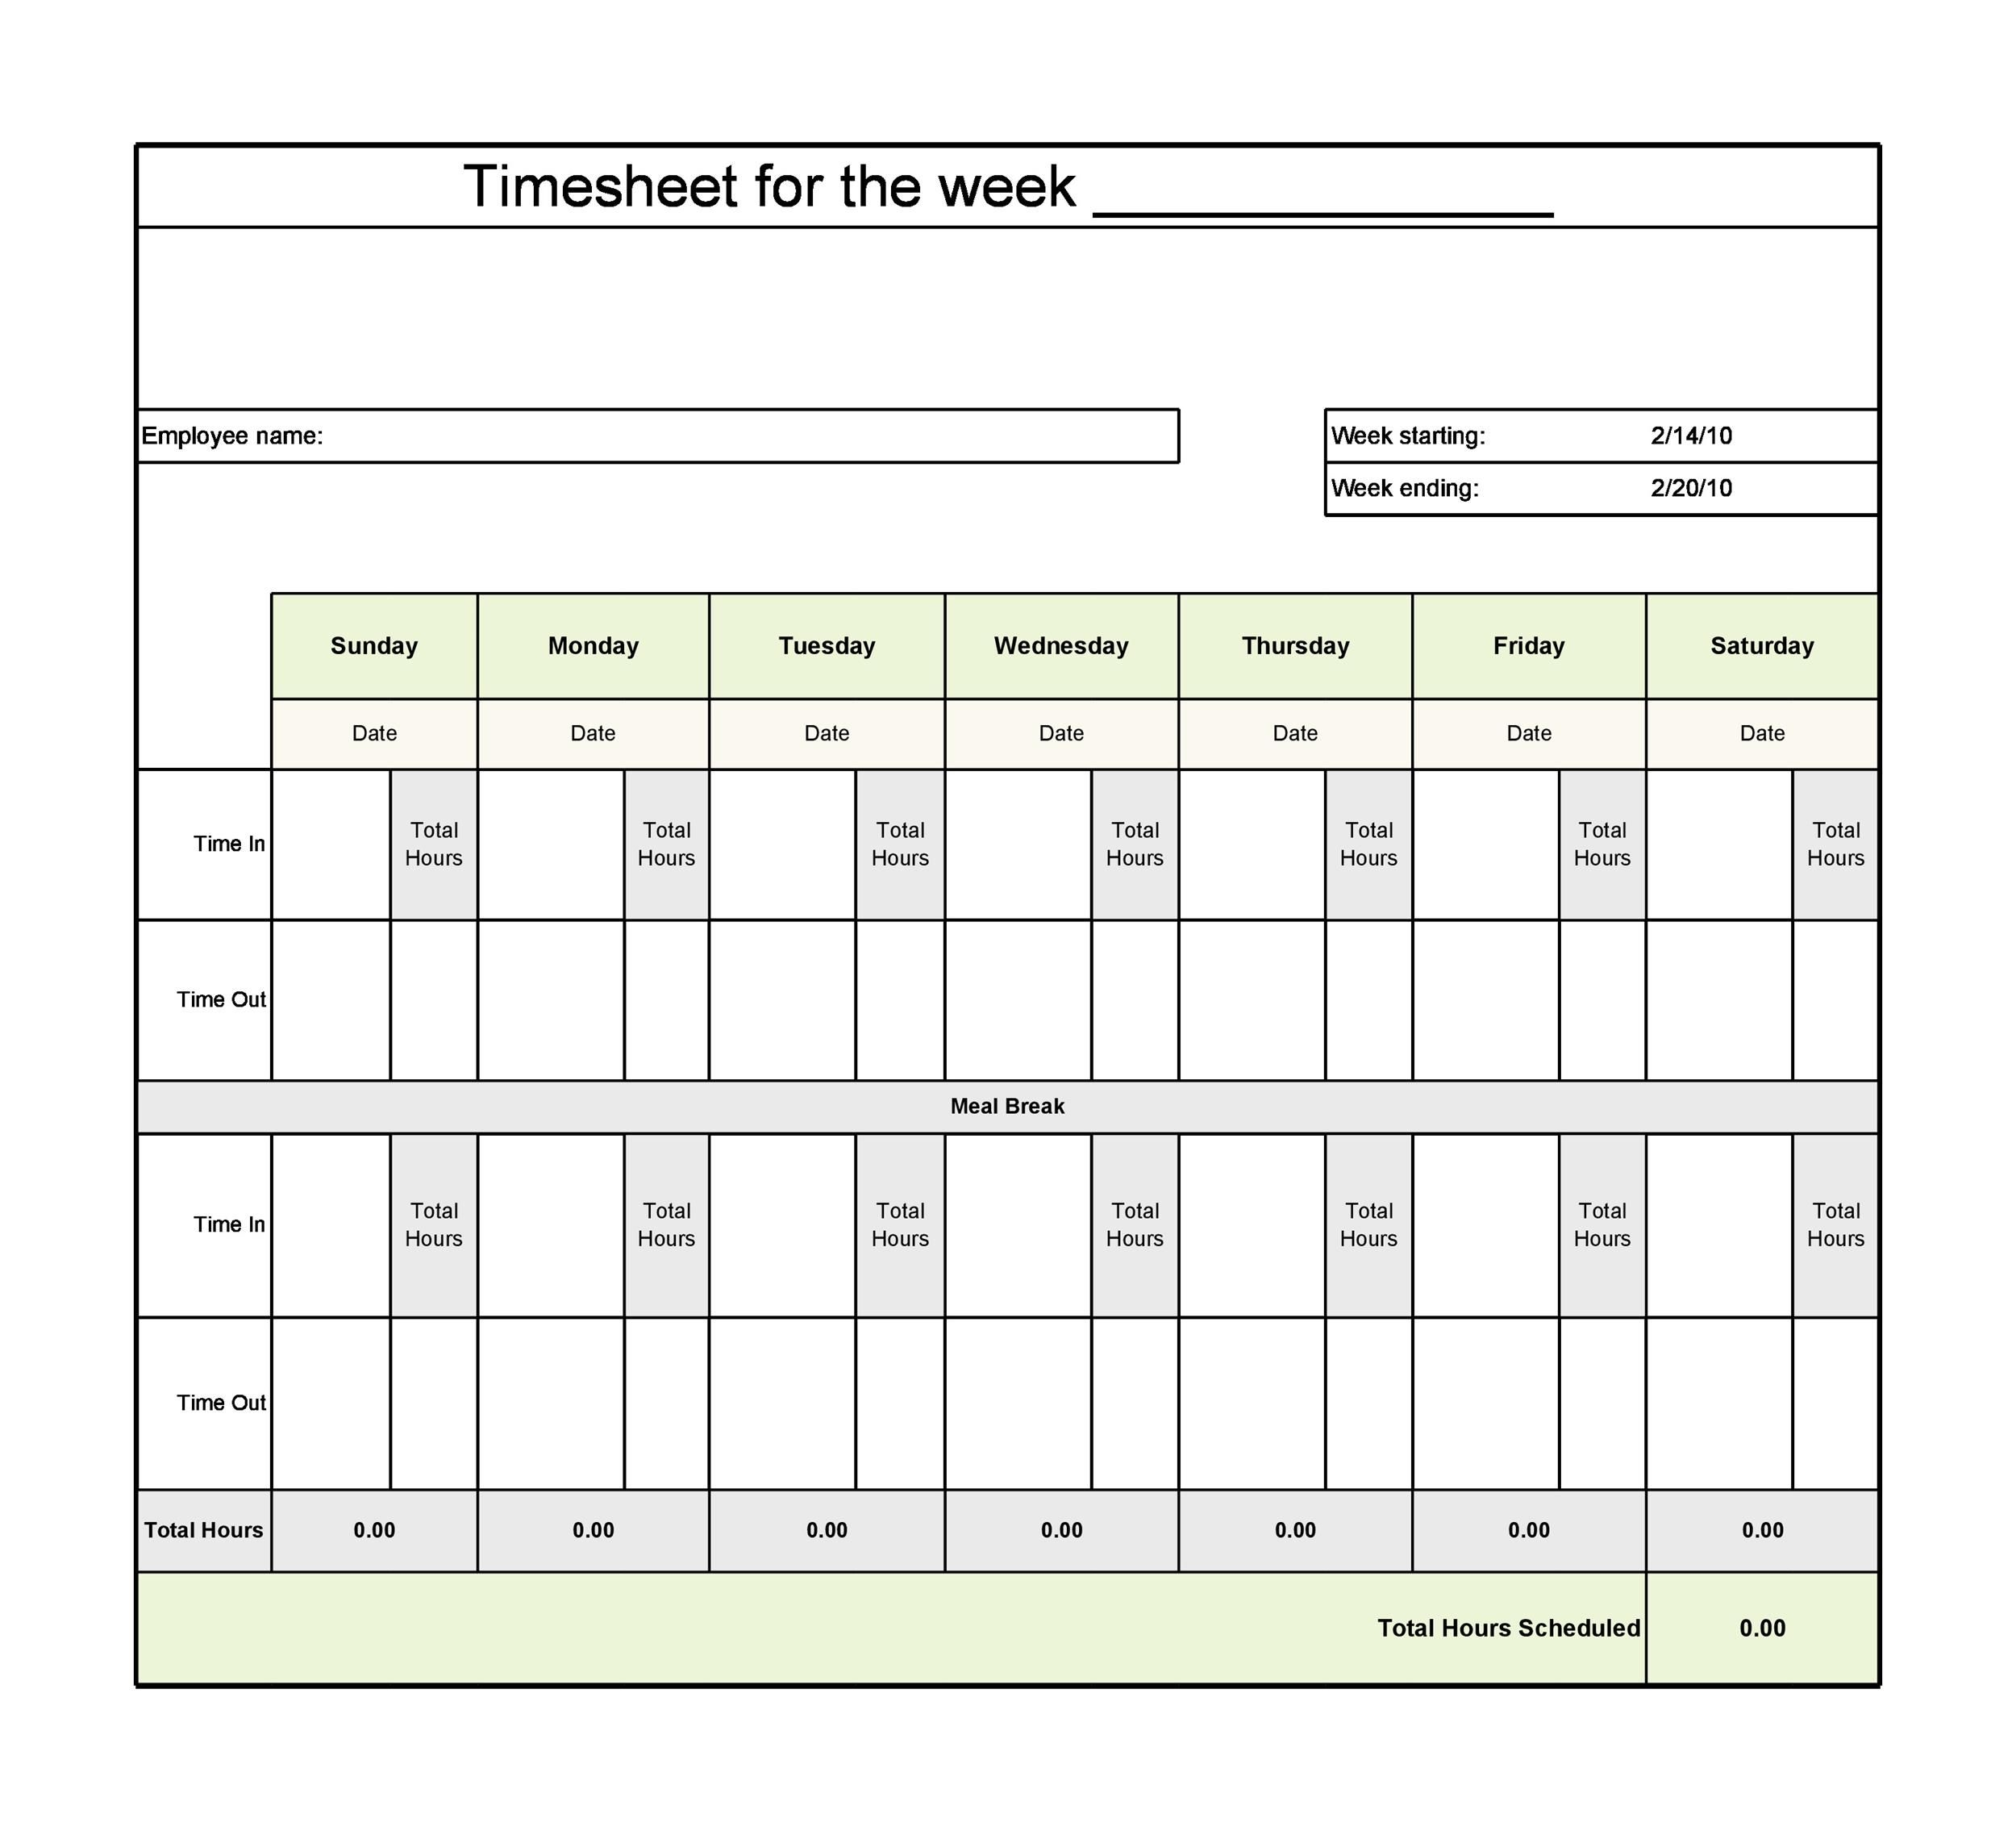 40 Free Timesheet Templates [In Excel] ᐅ Templatelab